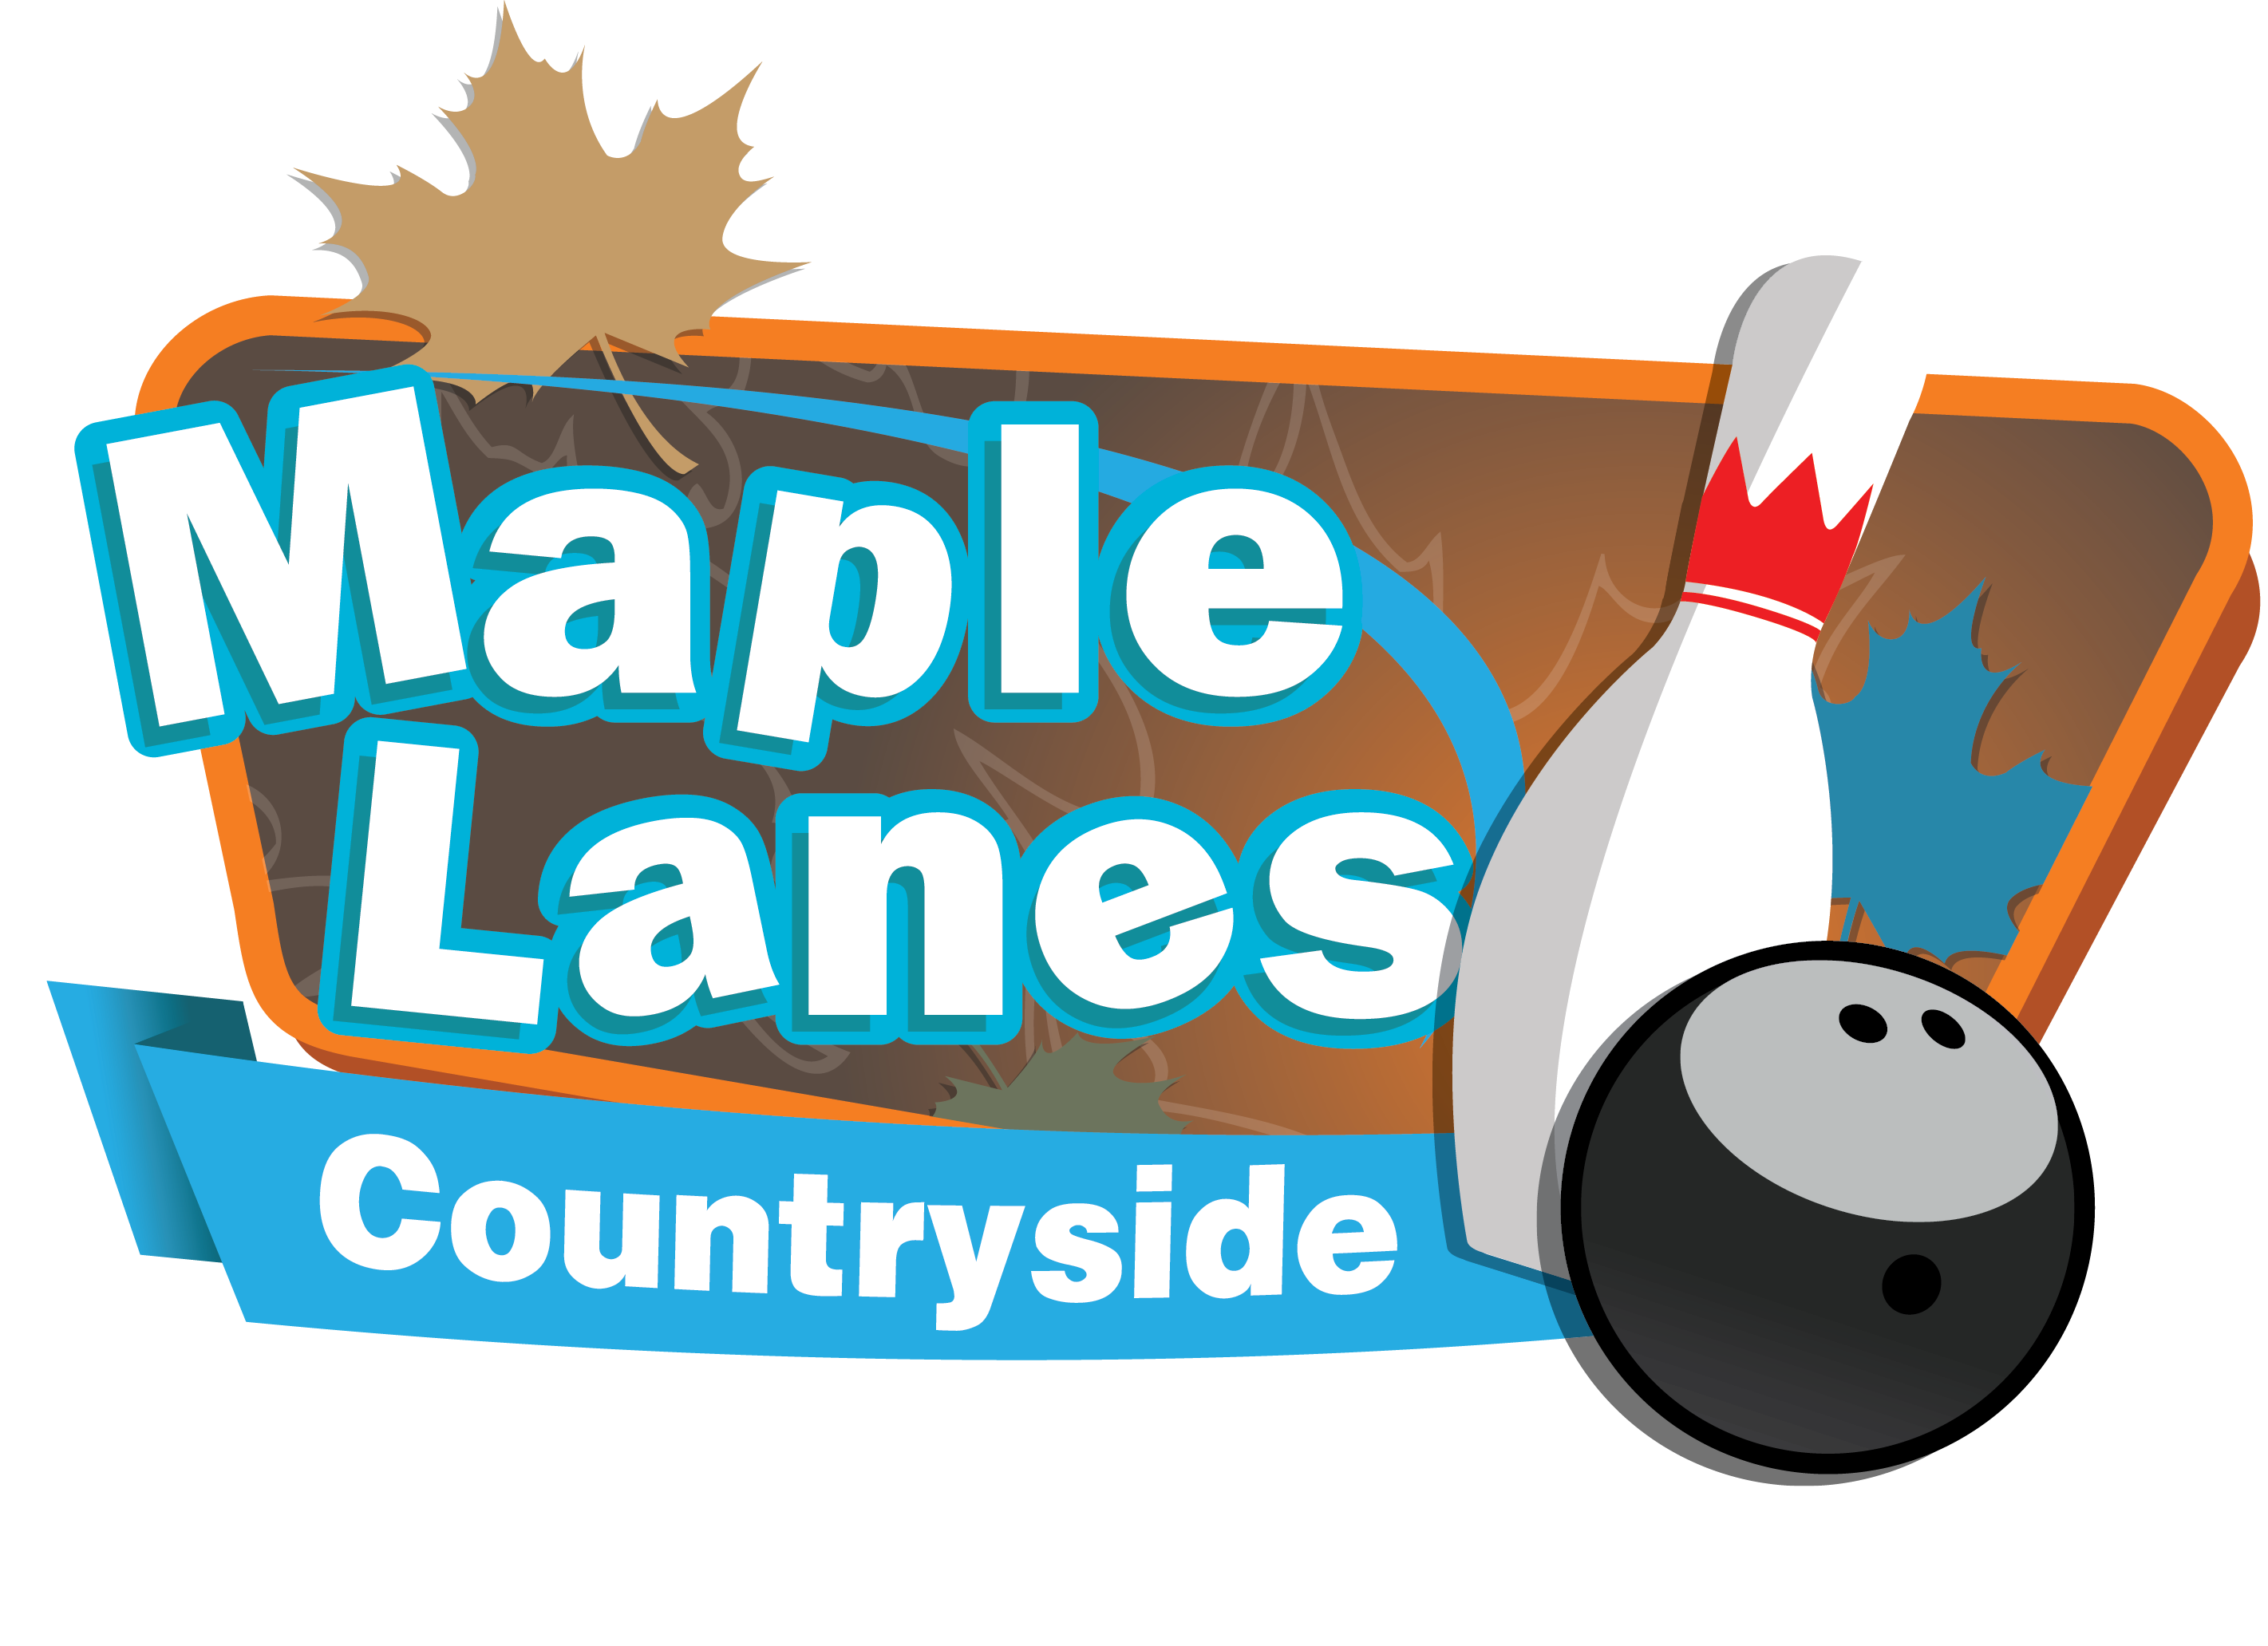 Countryside Lanes